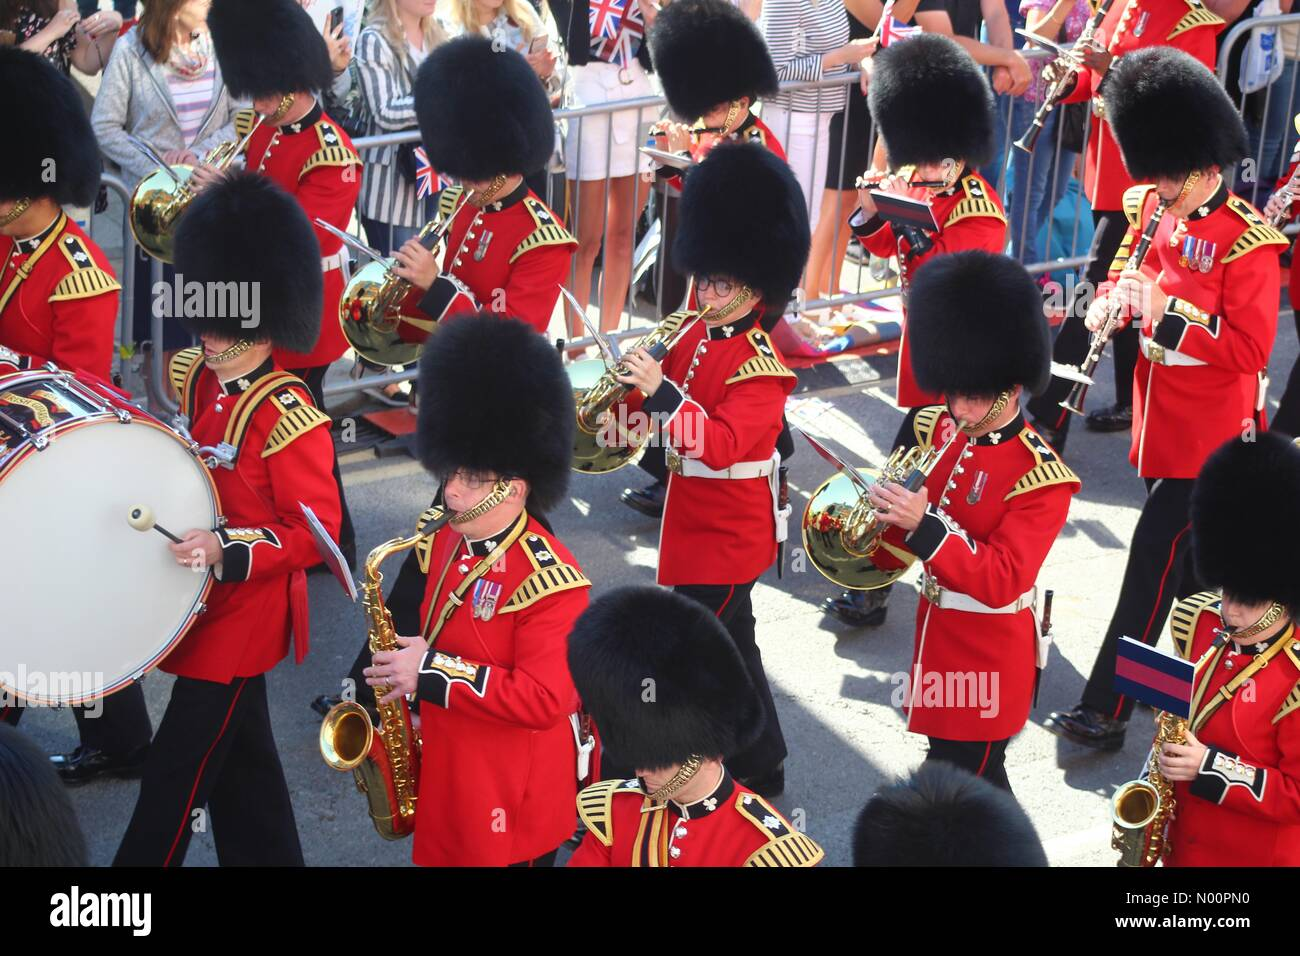 Windsor, UK, 19th May 2018. The town of Windsor celebrates the Royal Wedding between Prince Harry and Meghan Markle. Credit: Ollie Cole/StockimoNews/Alamy Live News Stock Photo